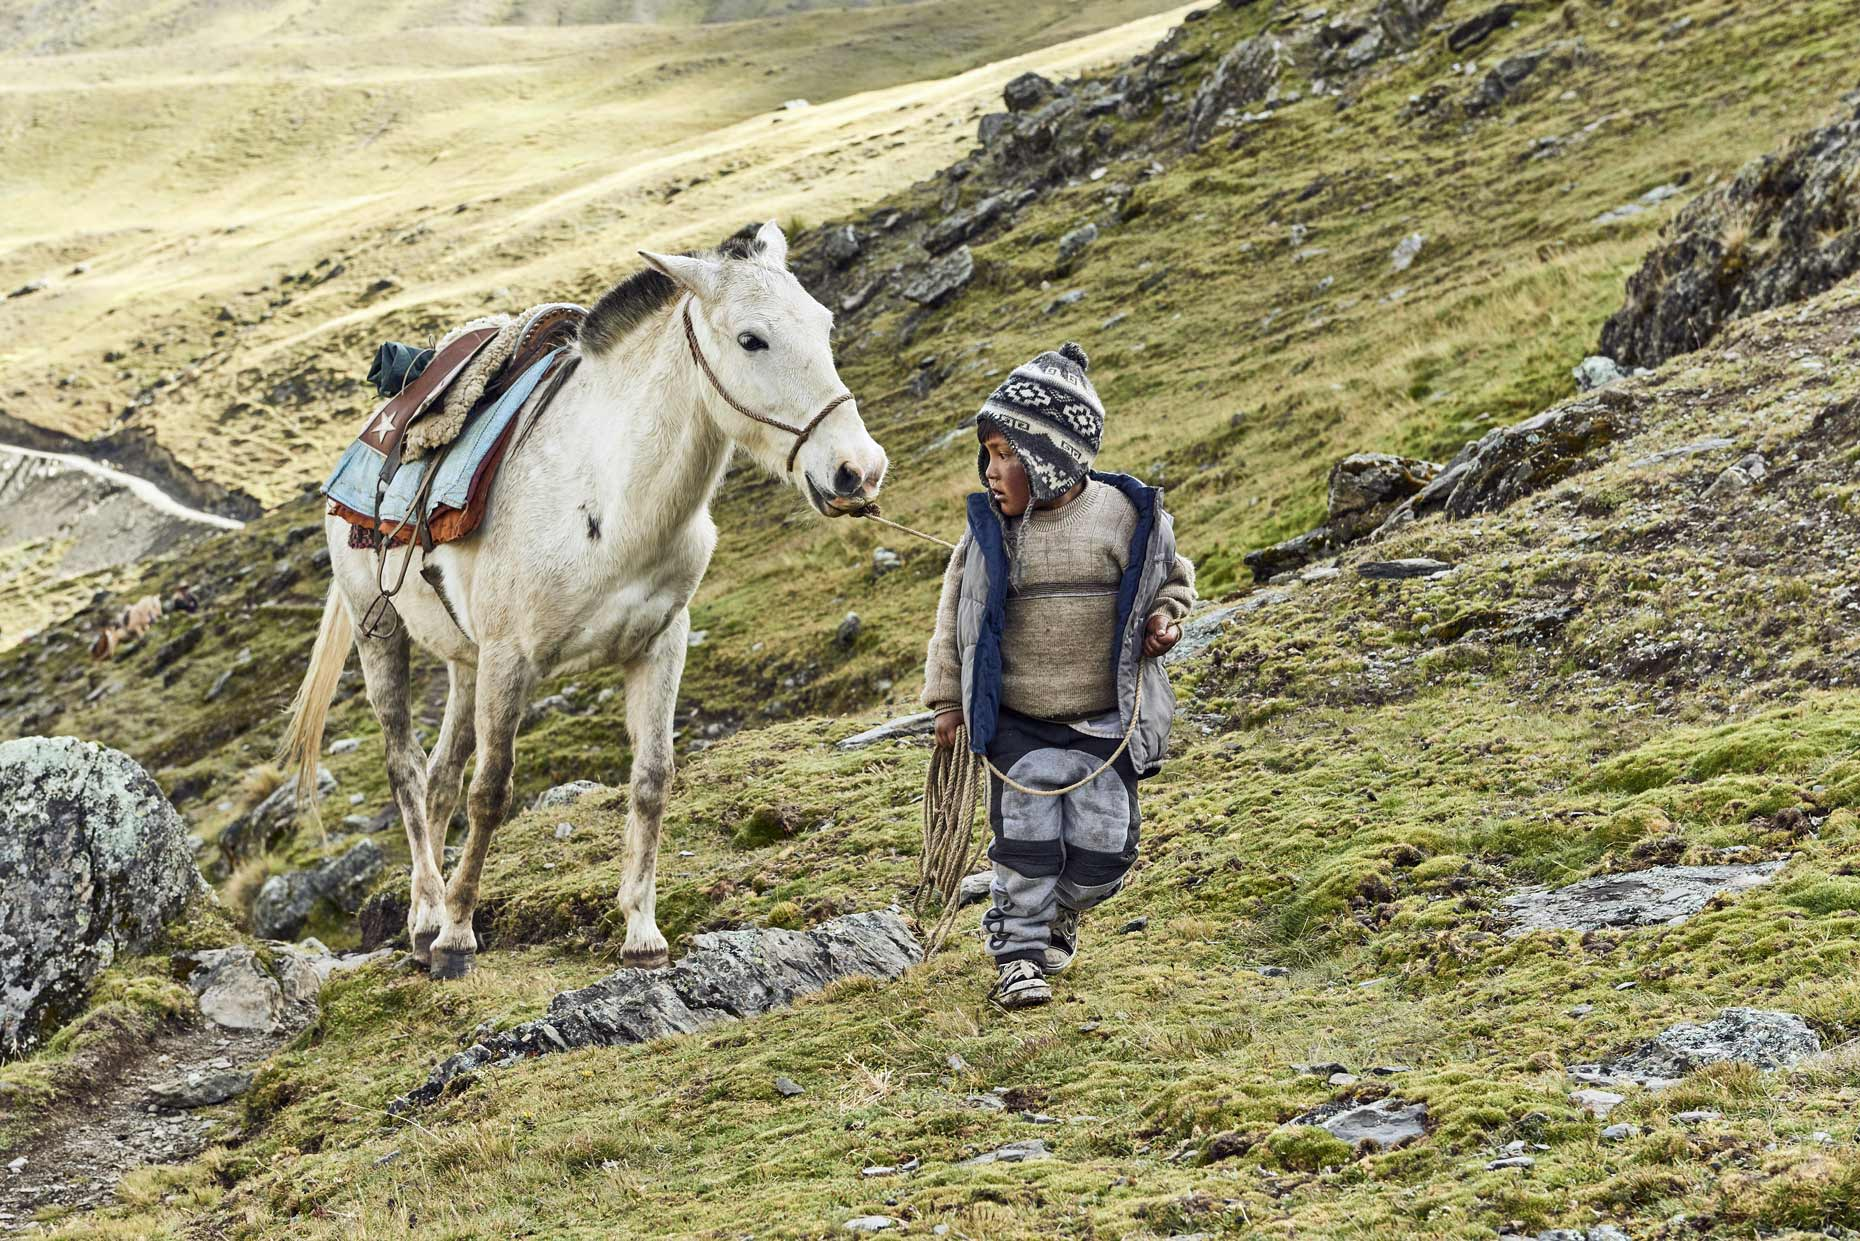 Young-Peruvian-village-boy-guiding-horse-through-Andean-mountains